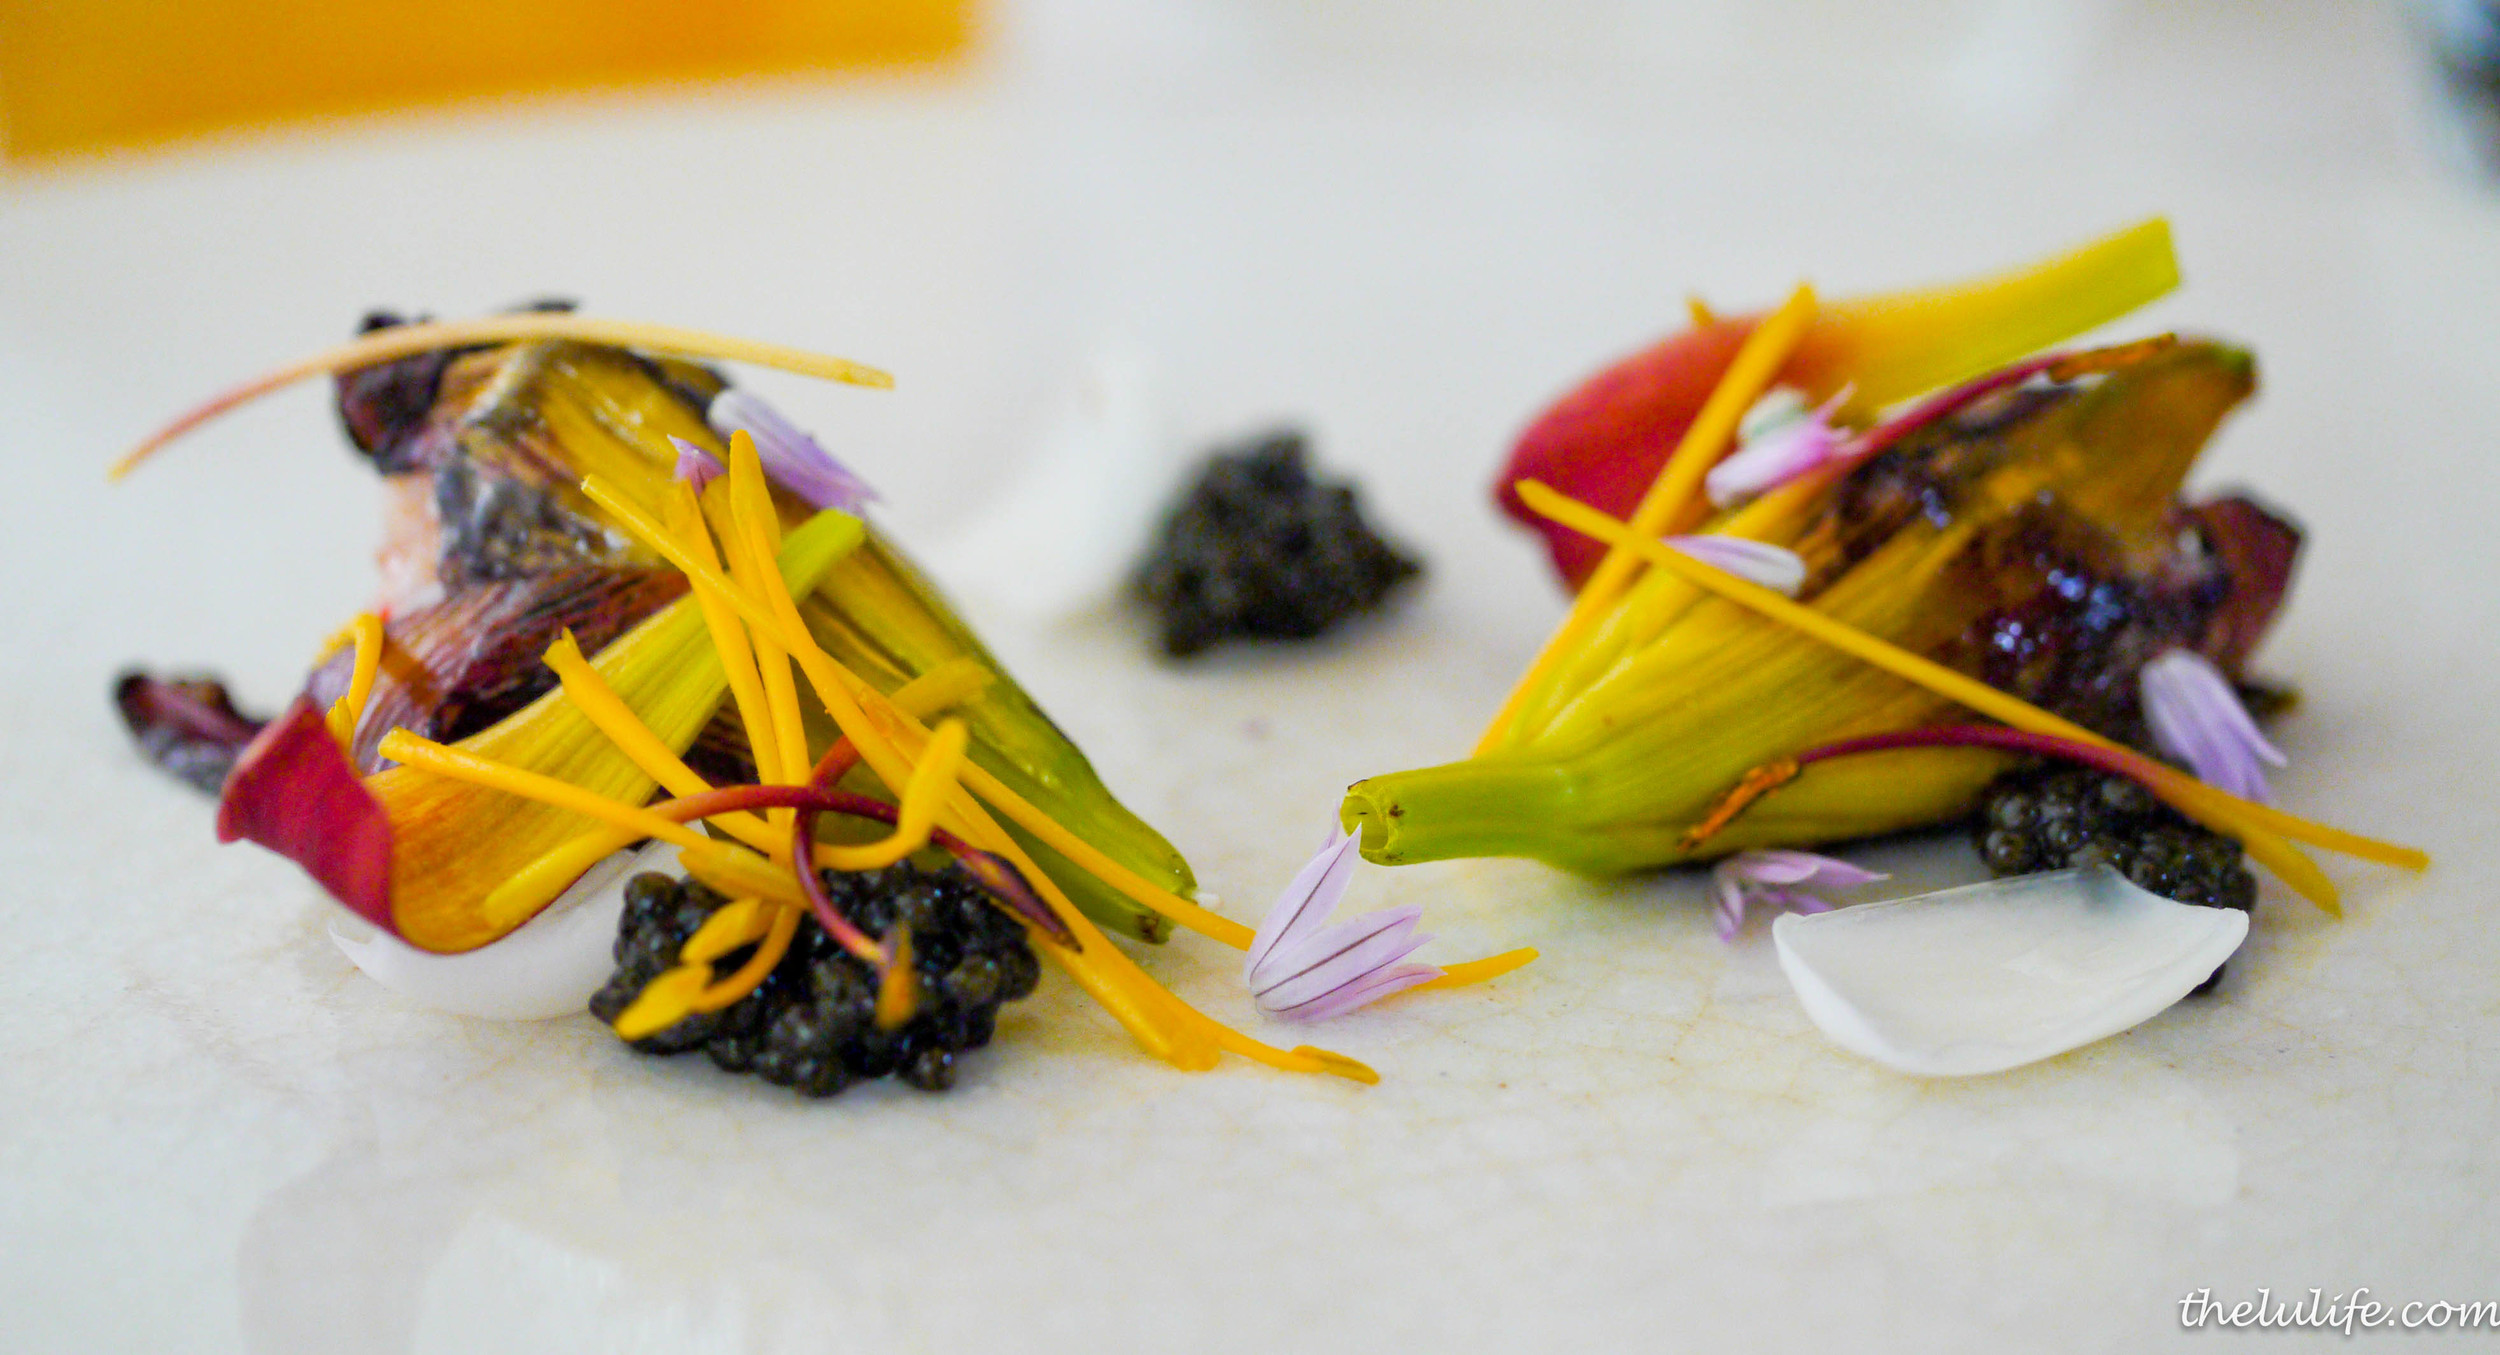 Course #5: Sterling caviar from San Francisco and day lilies stuffed with spot prawns Wow.  Never have I ever had caviar pair so nicely with other ingredients.  I guess lilies and prawns really do the trick!